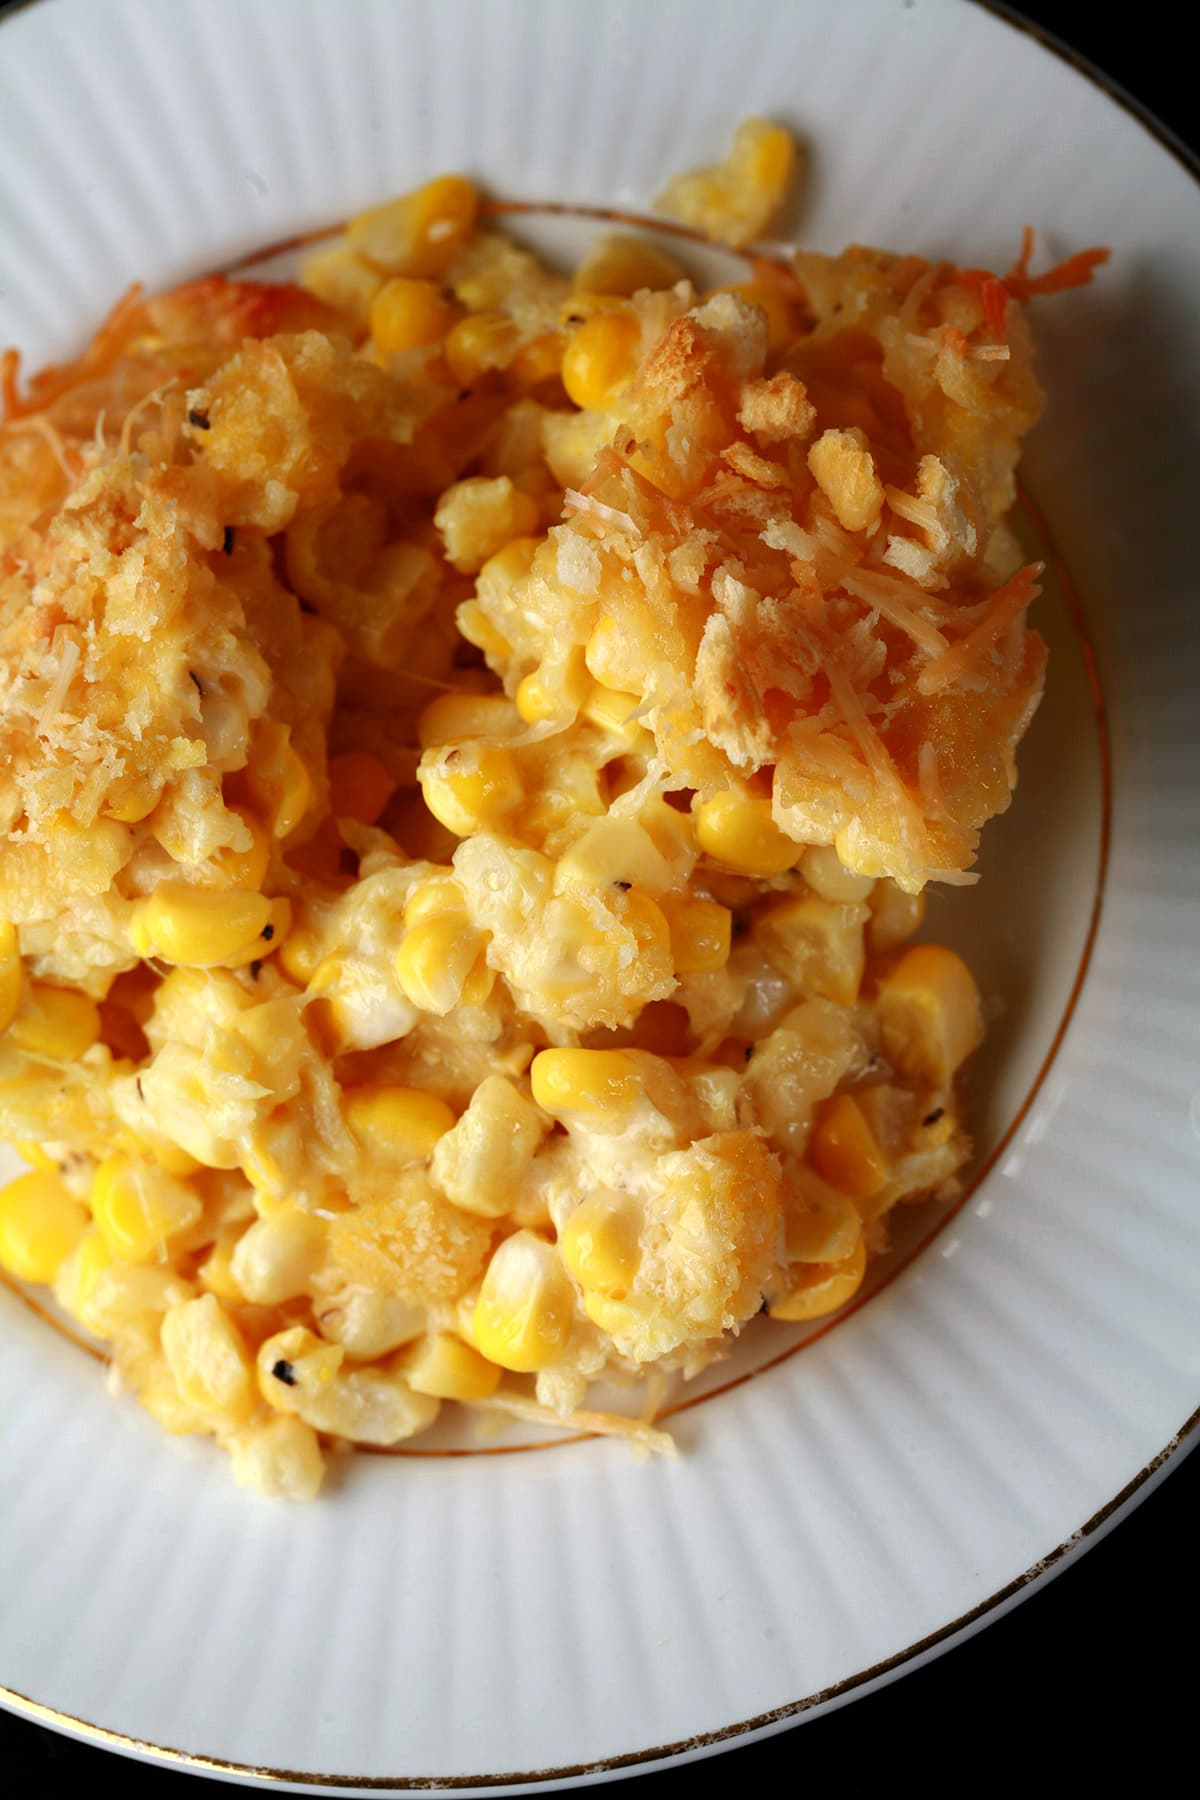 A serving of scalloped corn - fresh sweet corn, cheese, crackers, and more - on a small white plate.